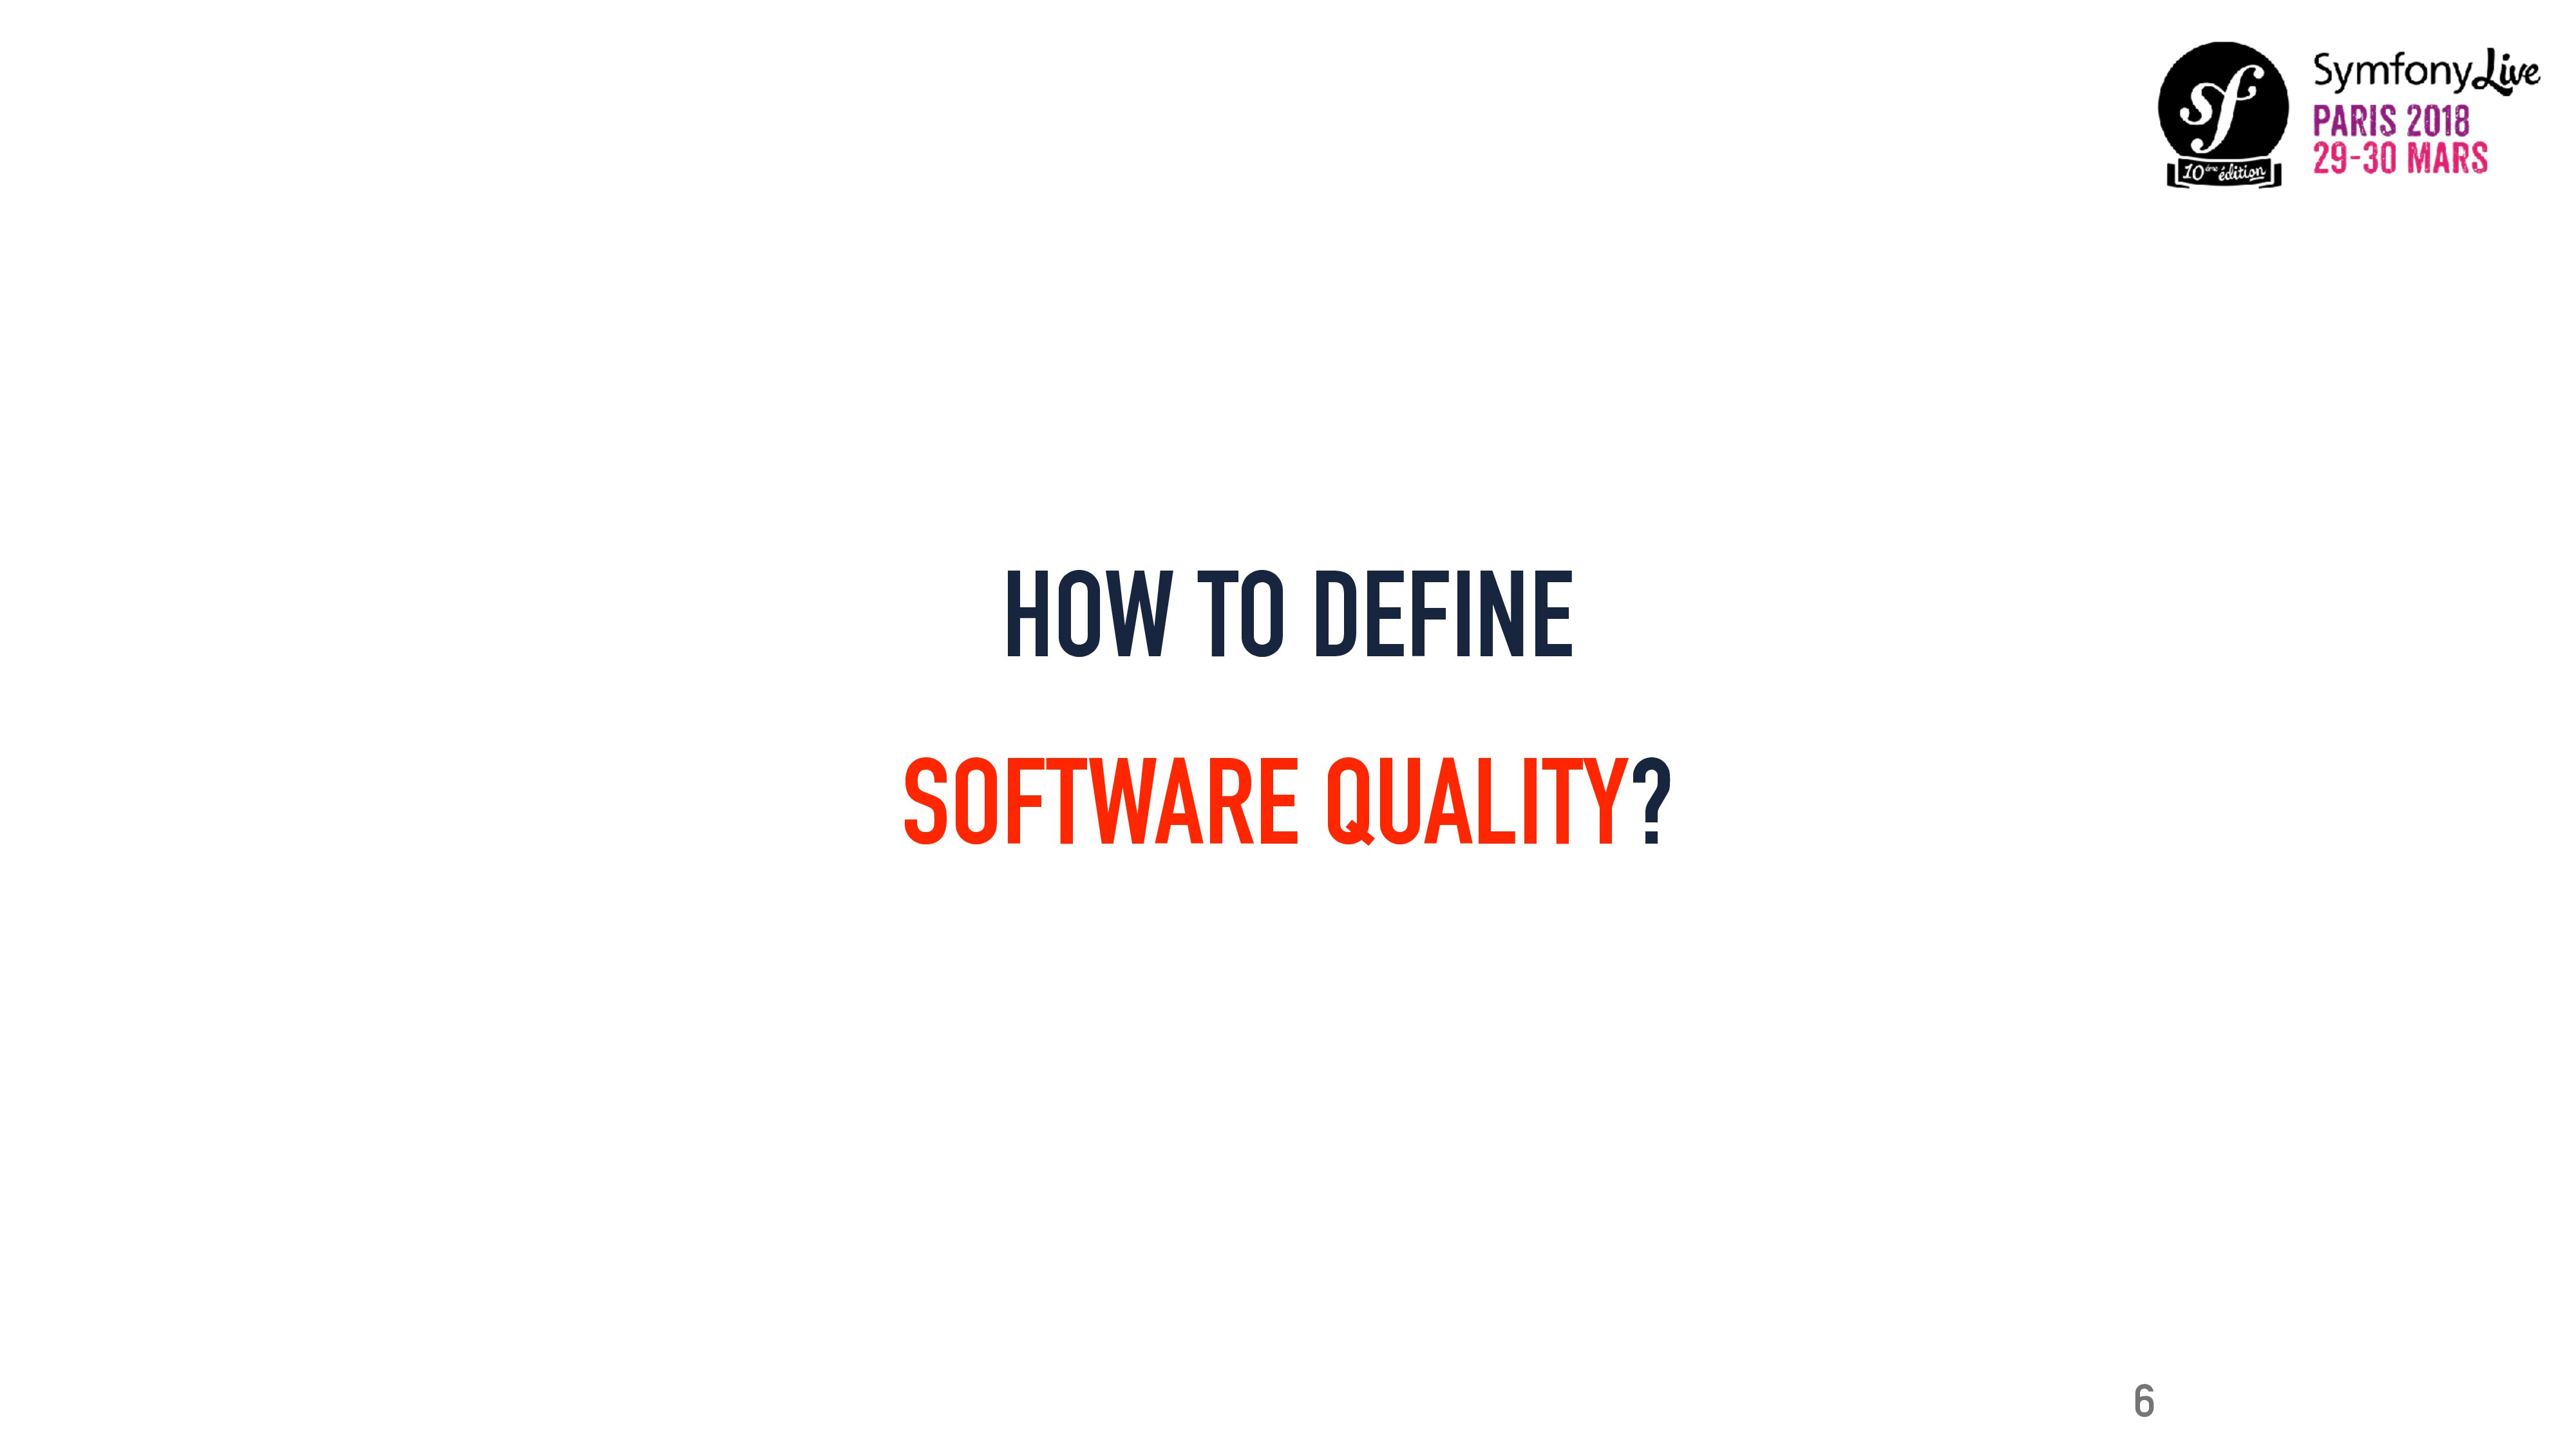 HOW TO DEFINE SOFTWARE QUALITY? 6